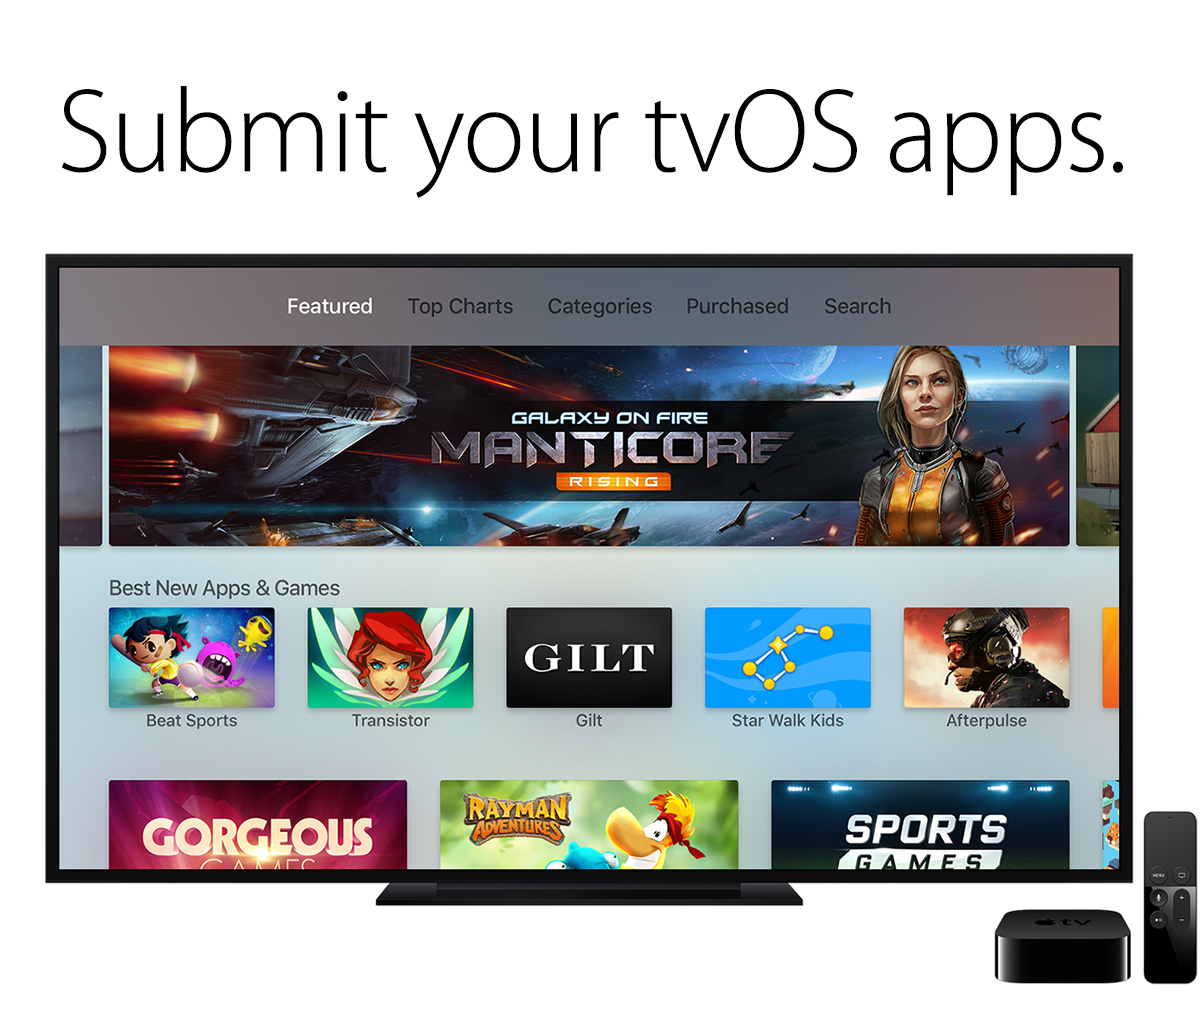 tvos-submit-apps-email